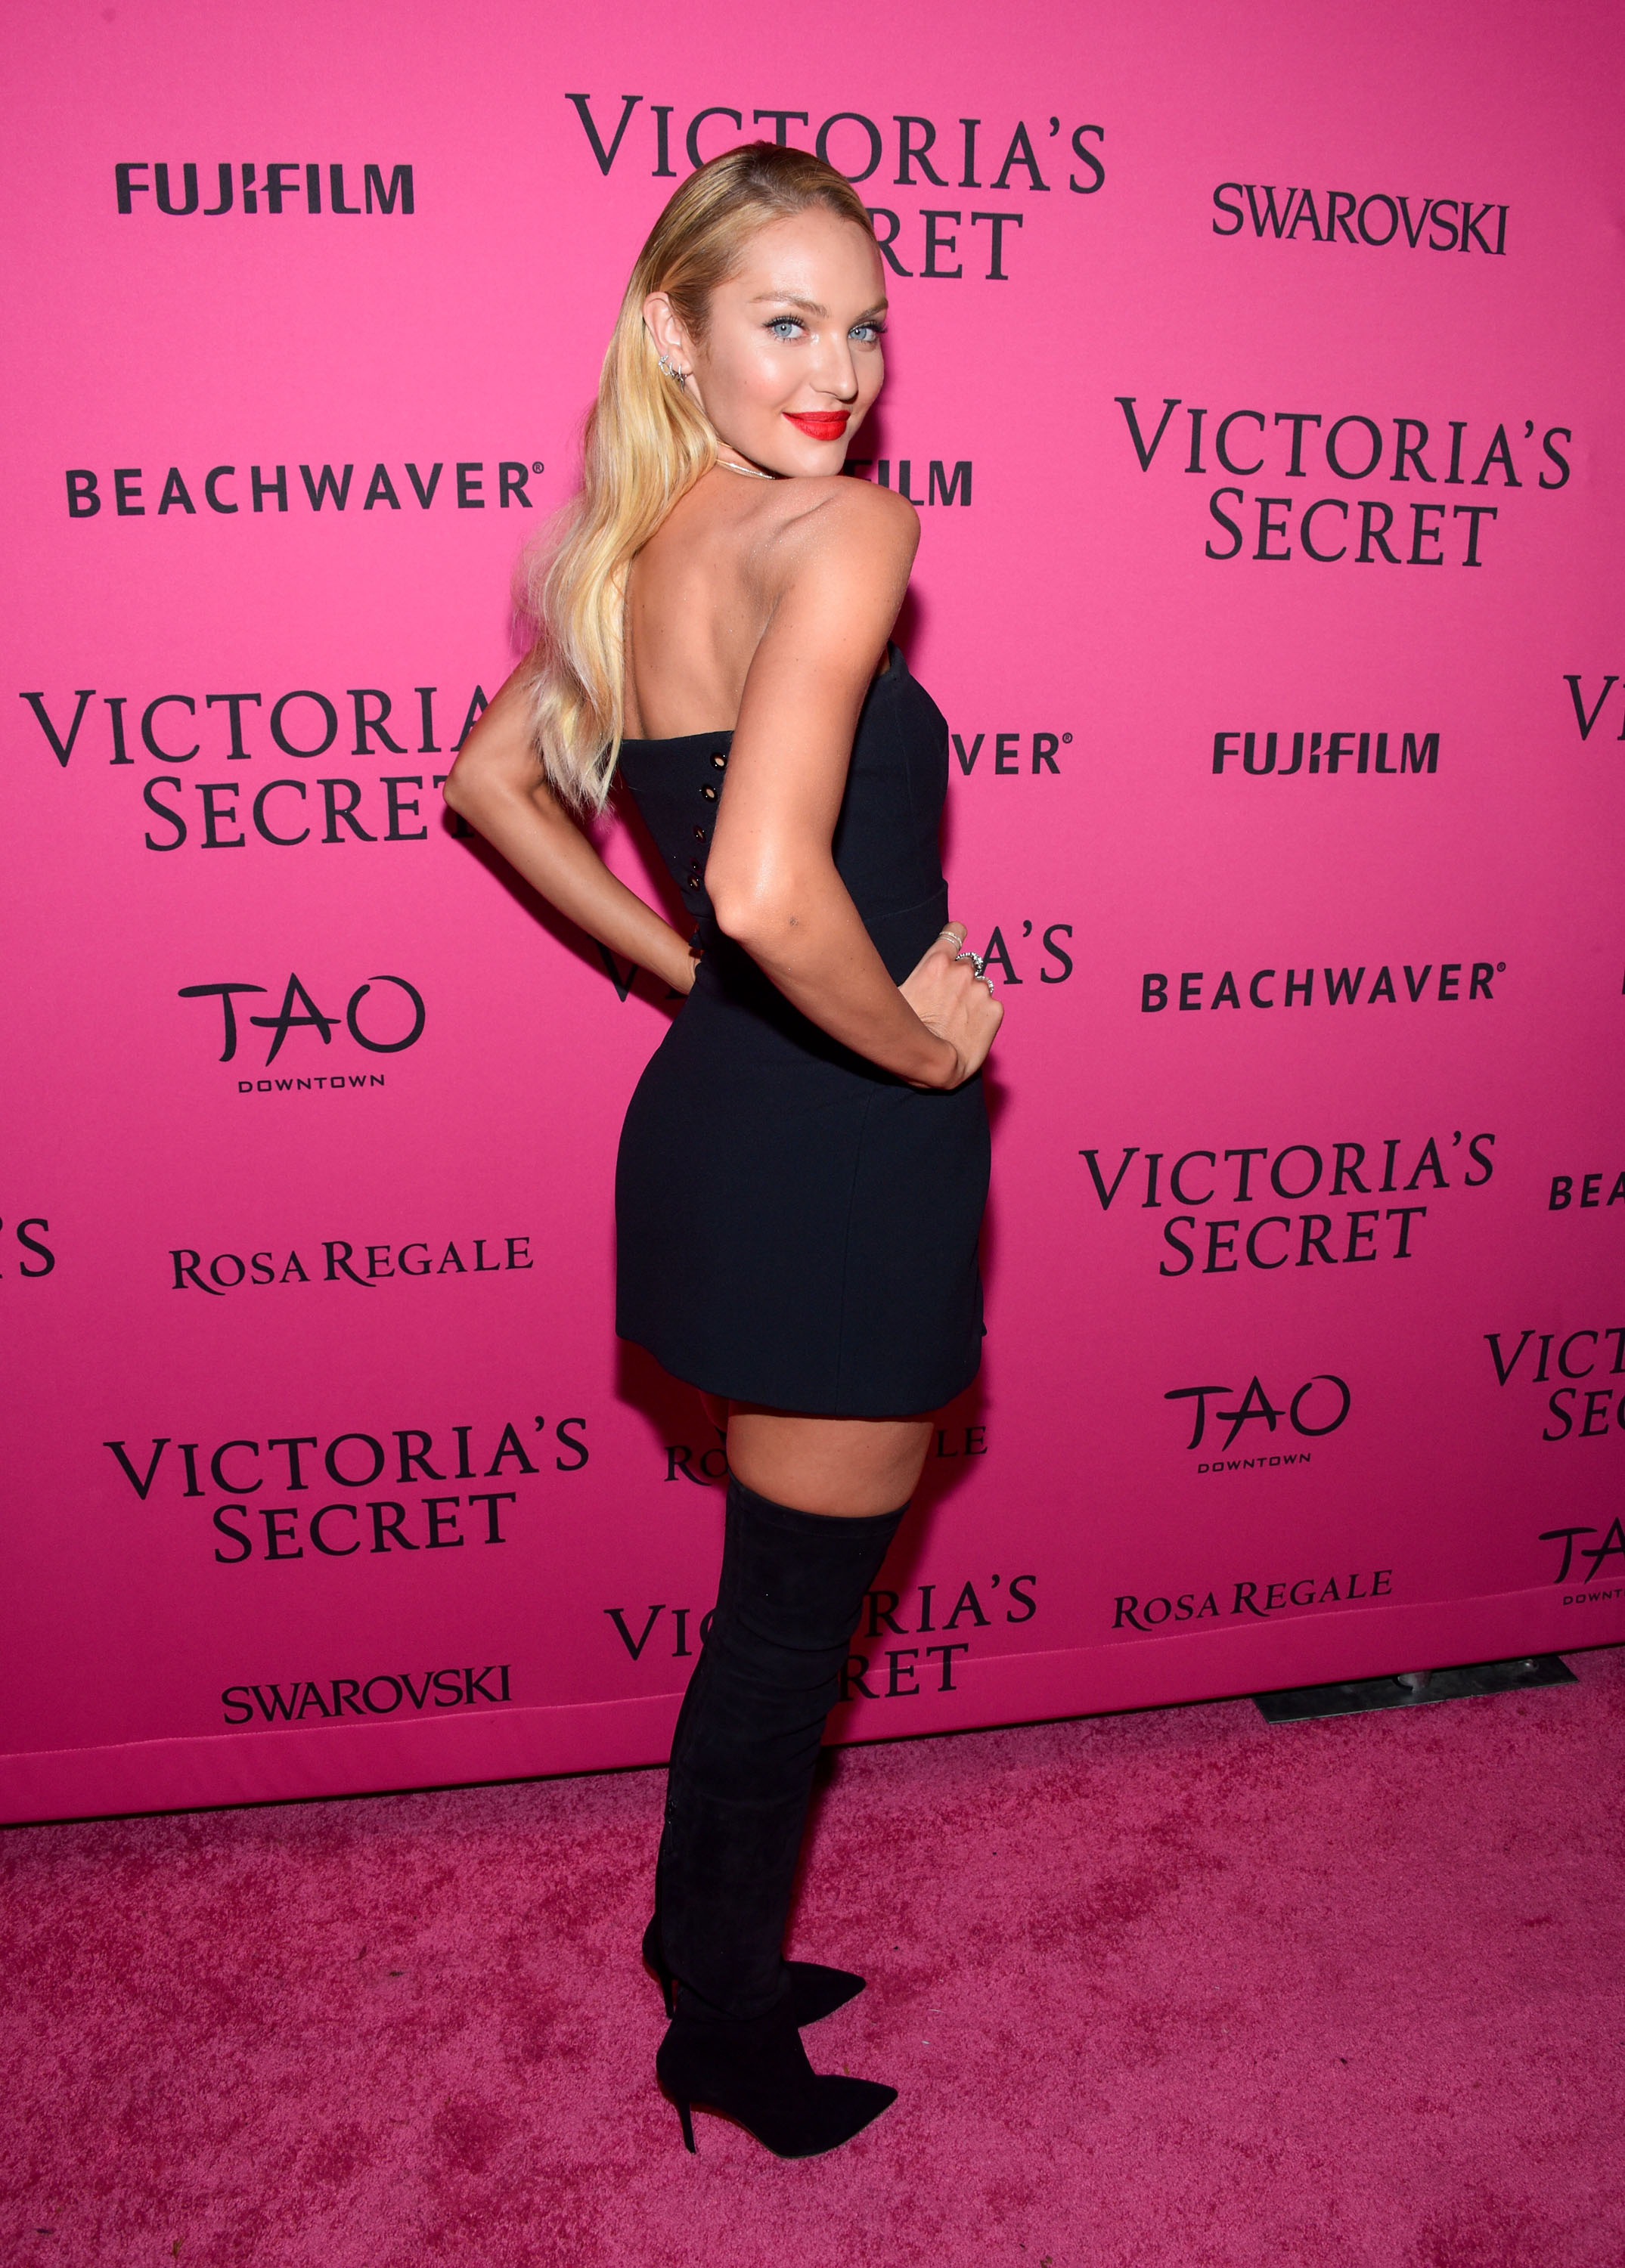 Exclusive: The VS Angels Divulge Their Ultimate Dream Girl foto